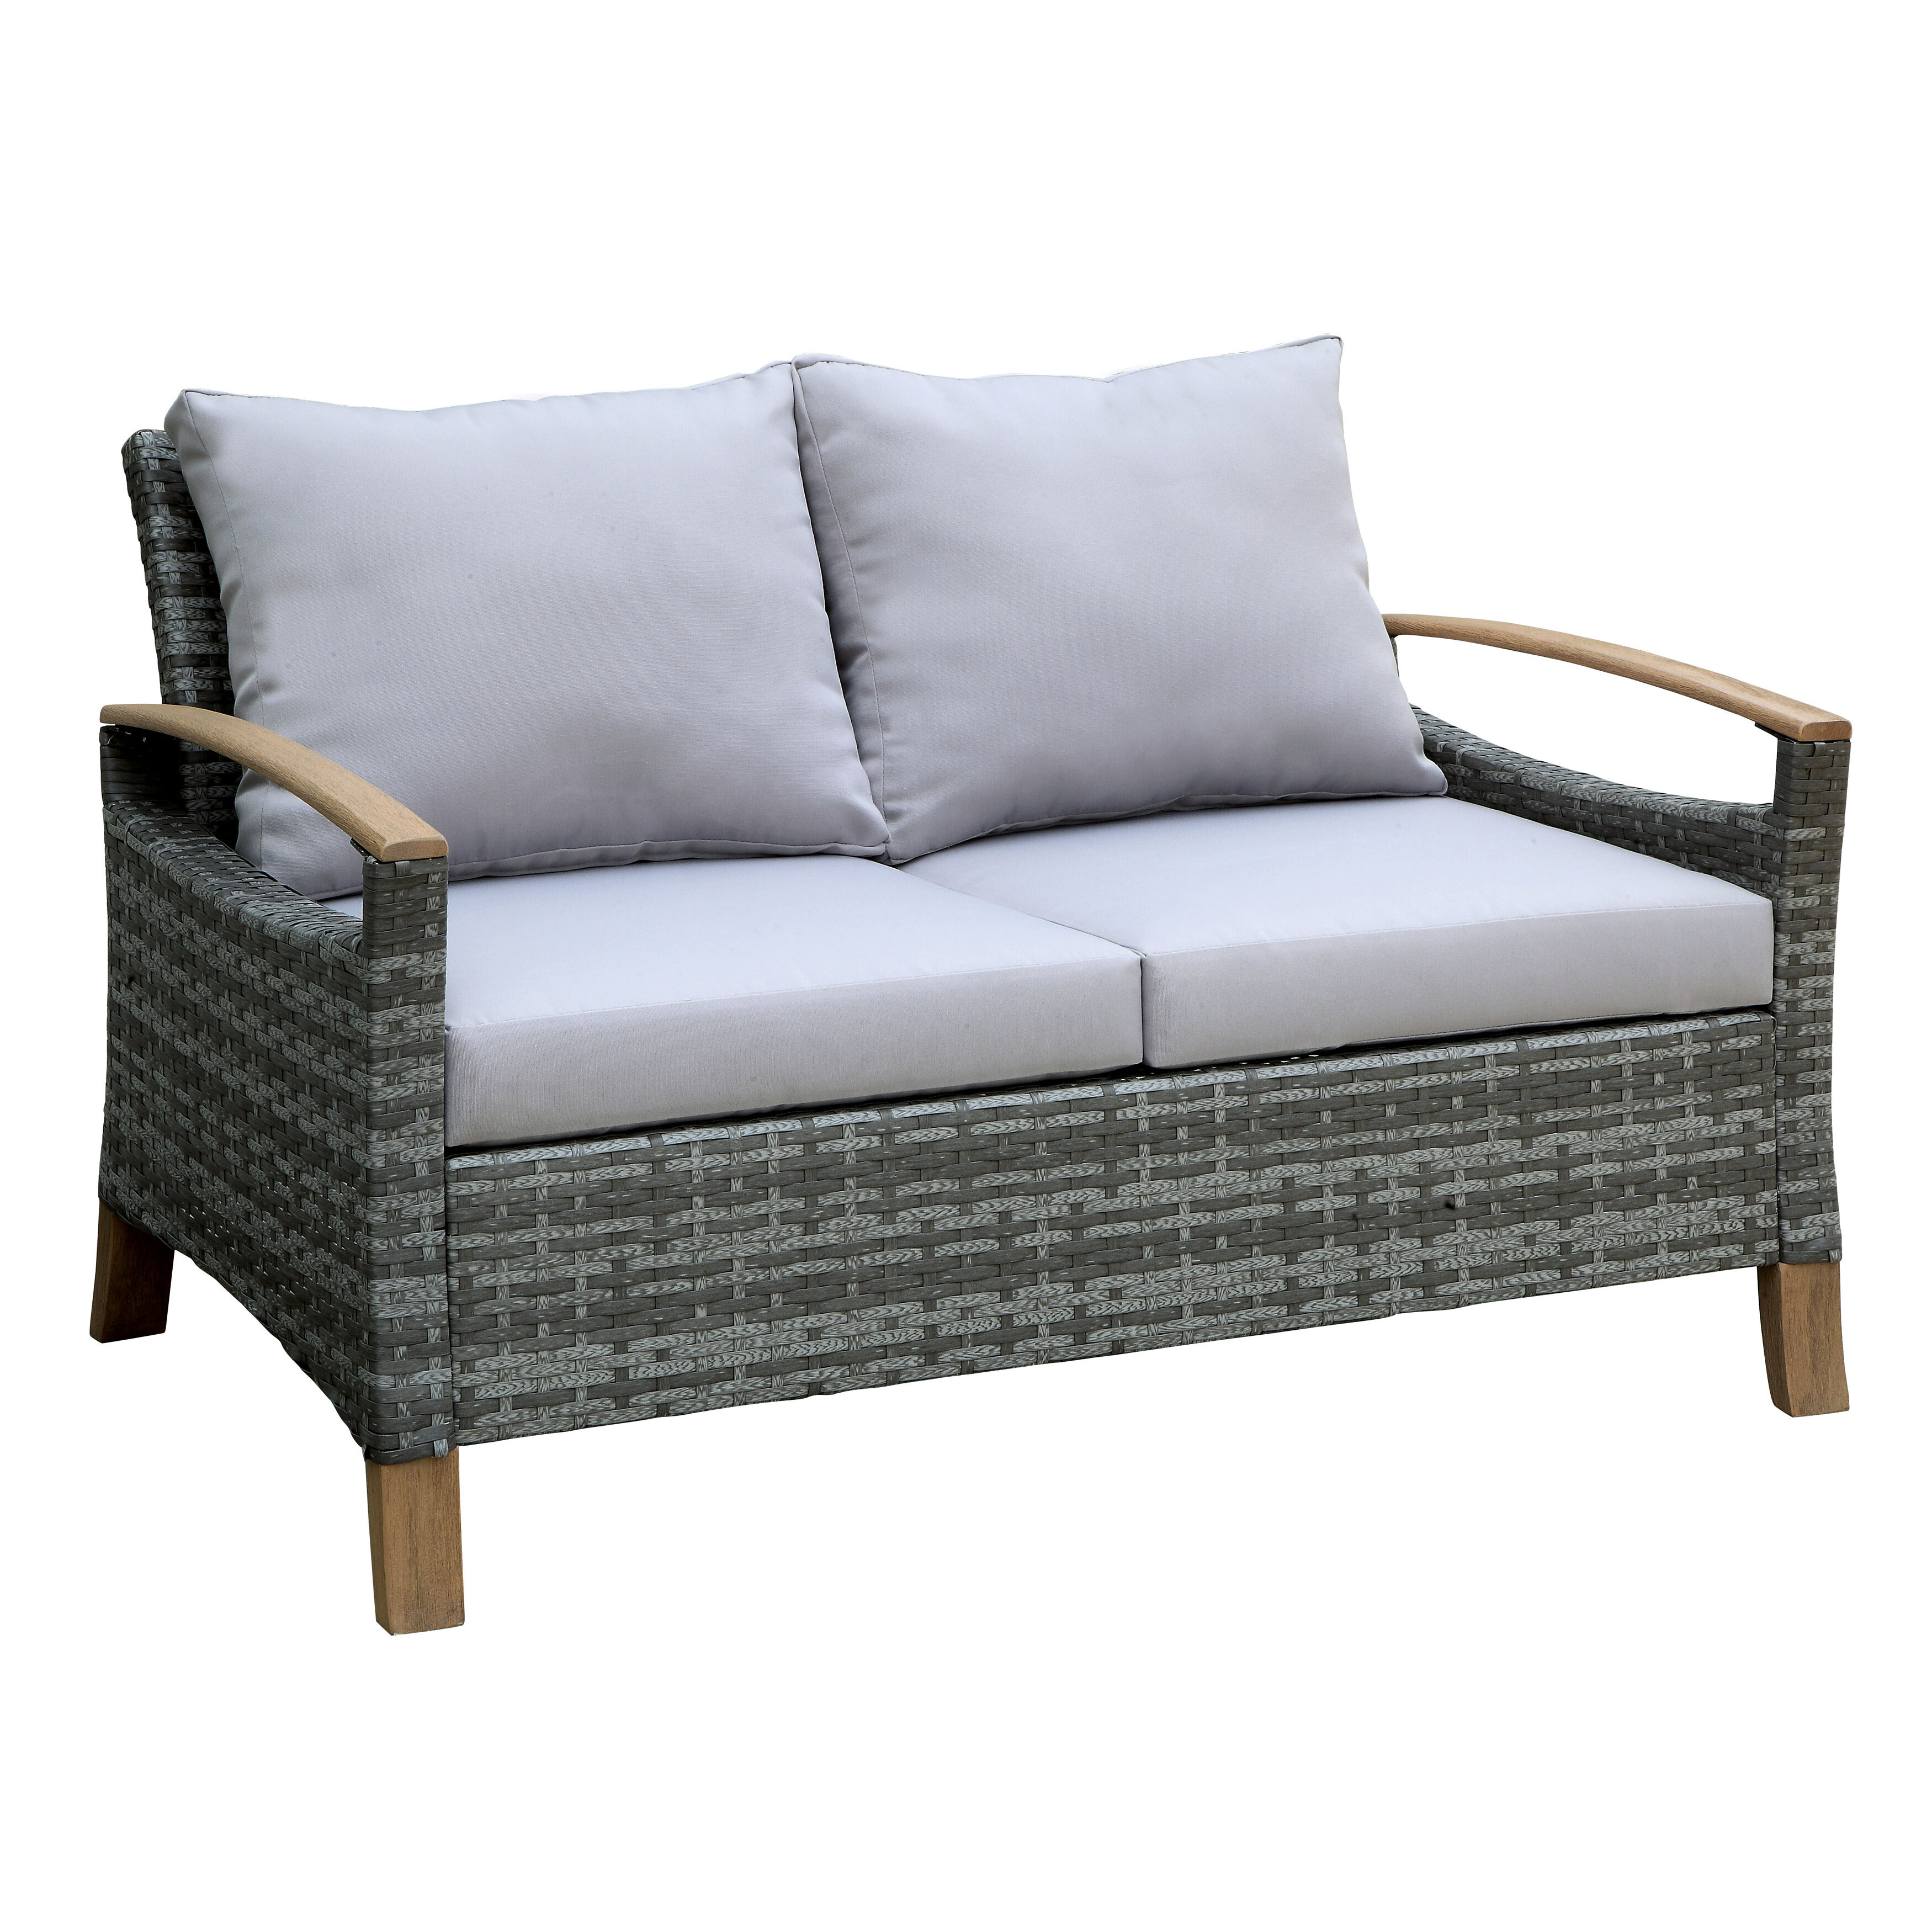 Penniman Contemporary Loveseat with Cushions